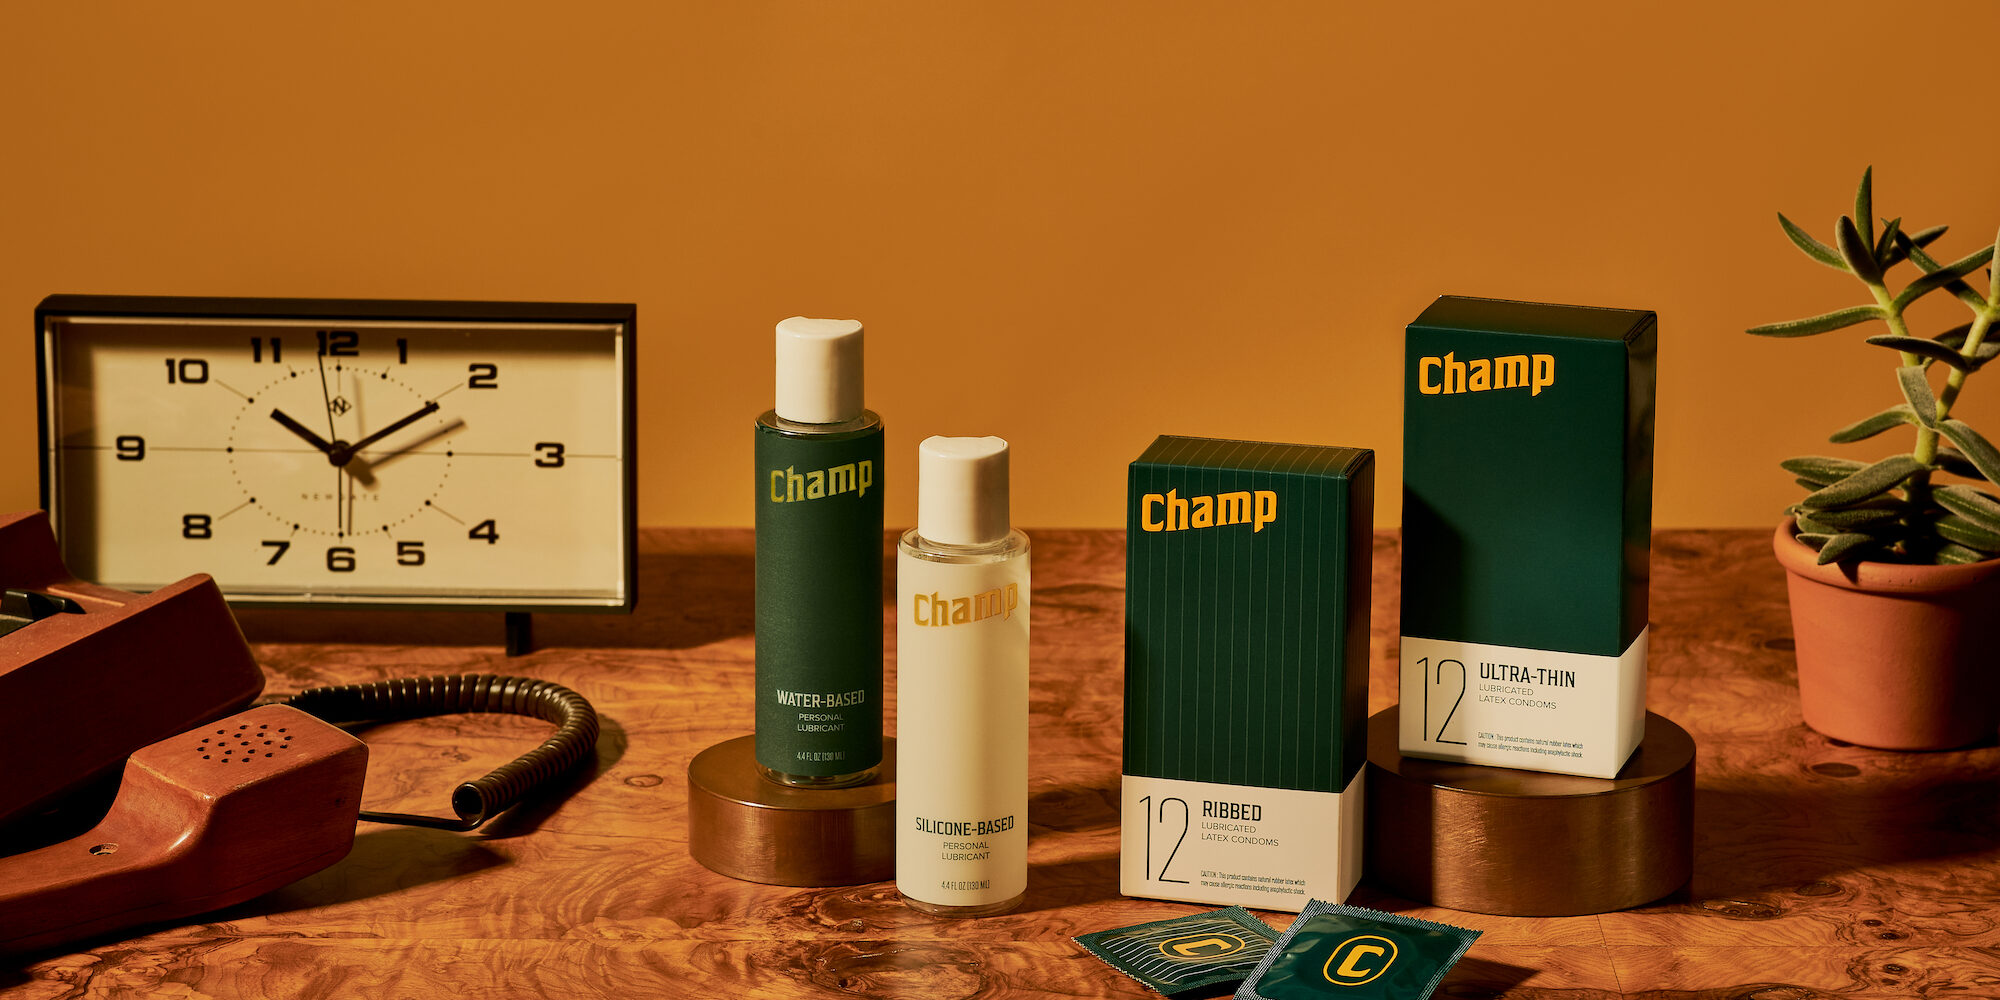 New DTC Sexual Wellness Brand Champ Is Breaking Condom Taboos